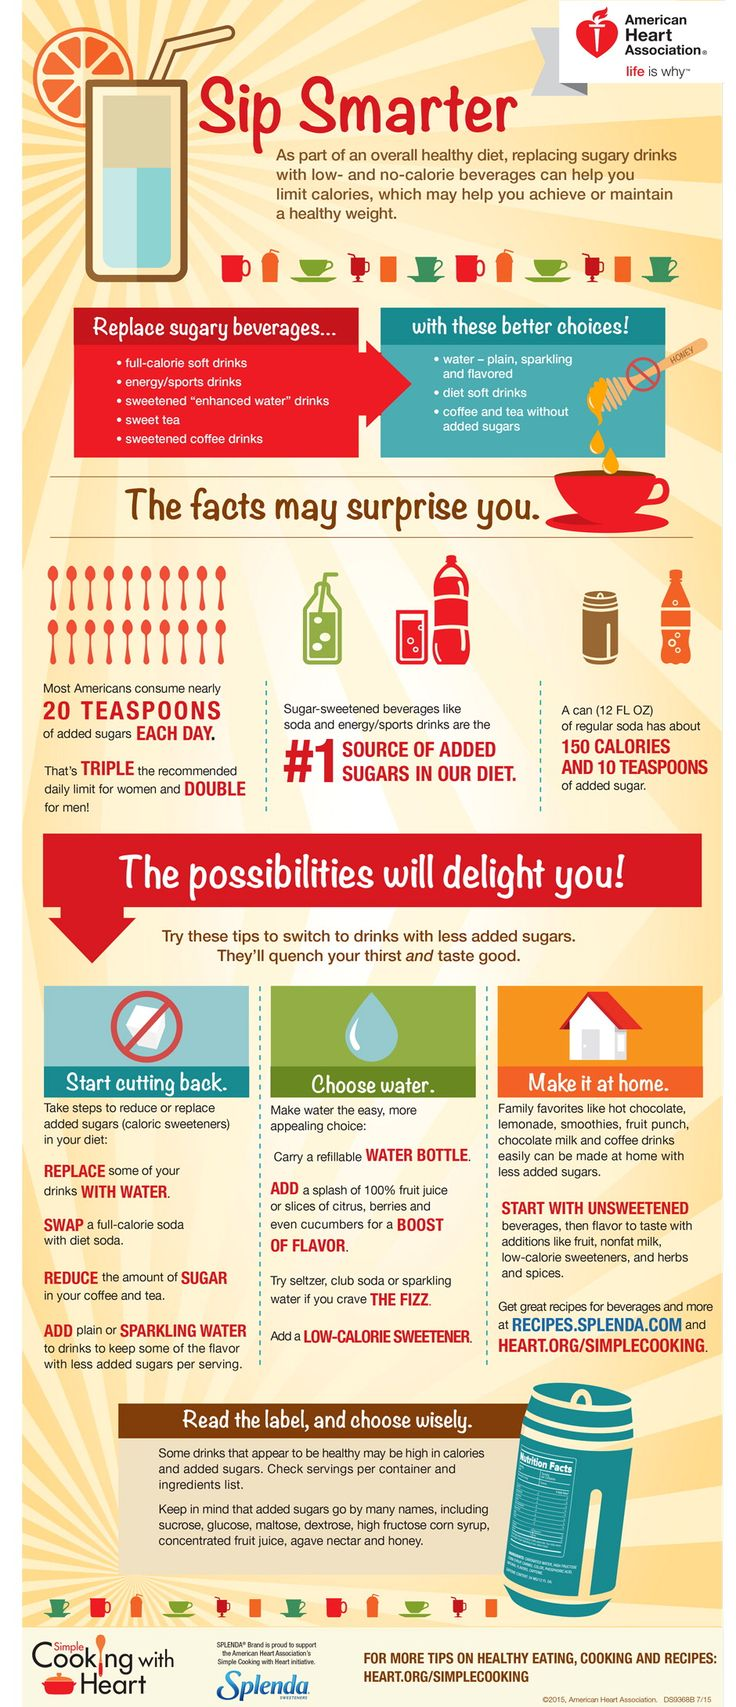 Simple Cooking with Heart Sip Smarter Infographic